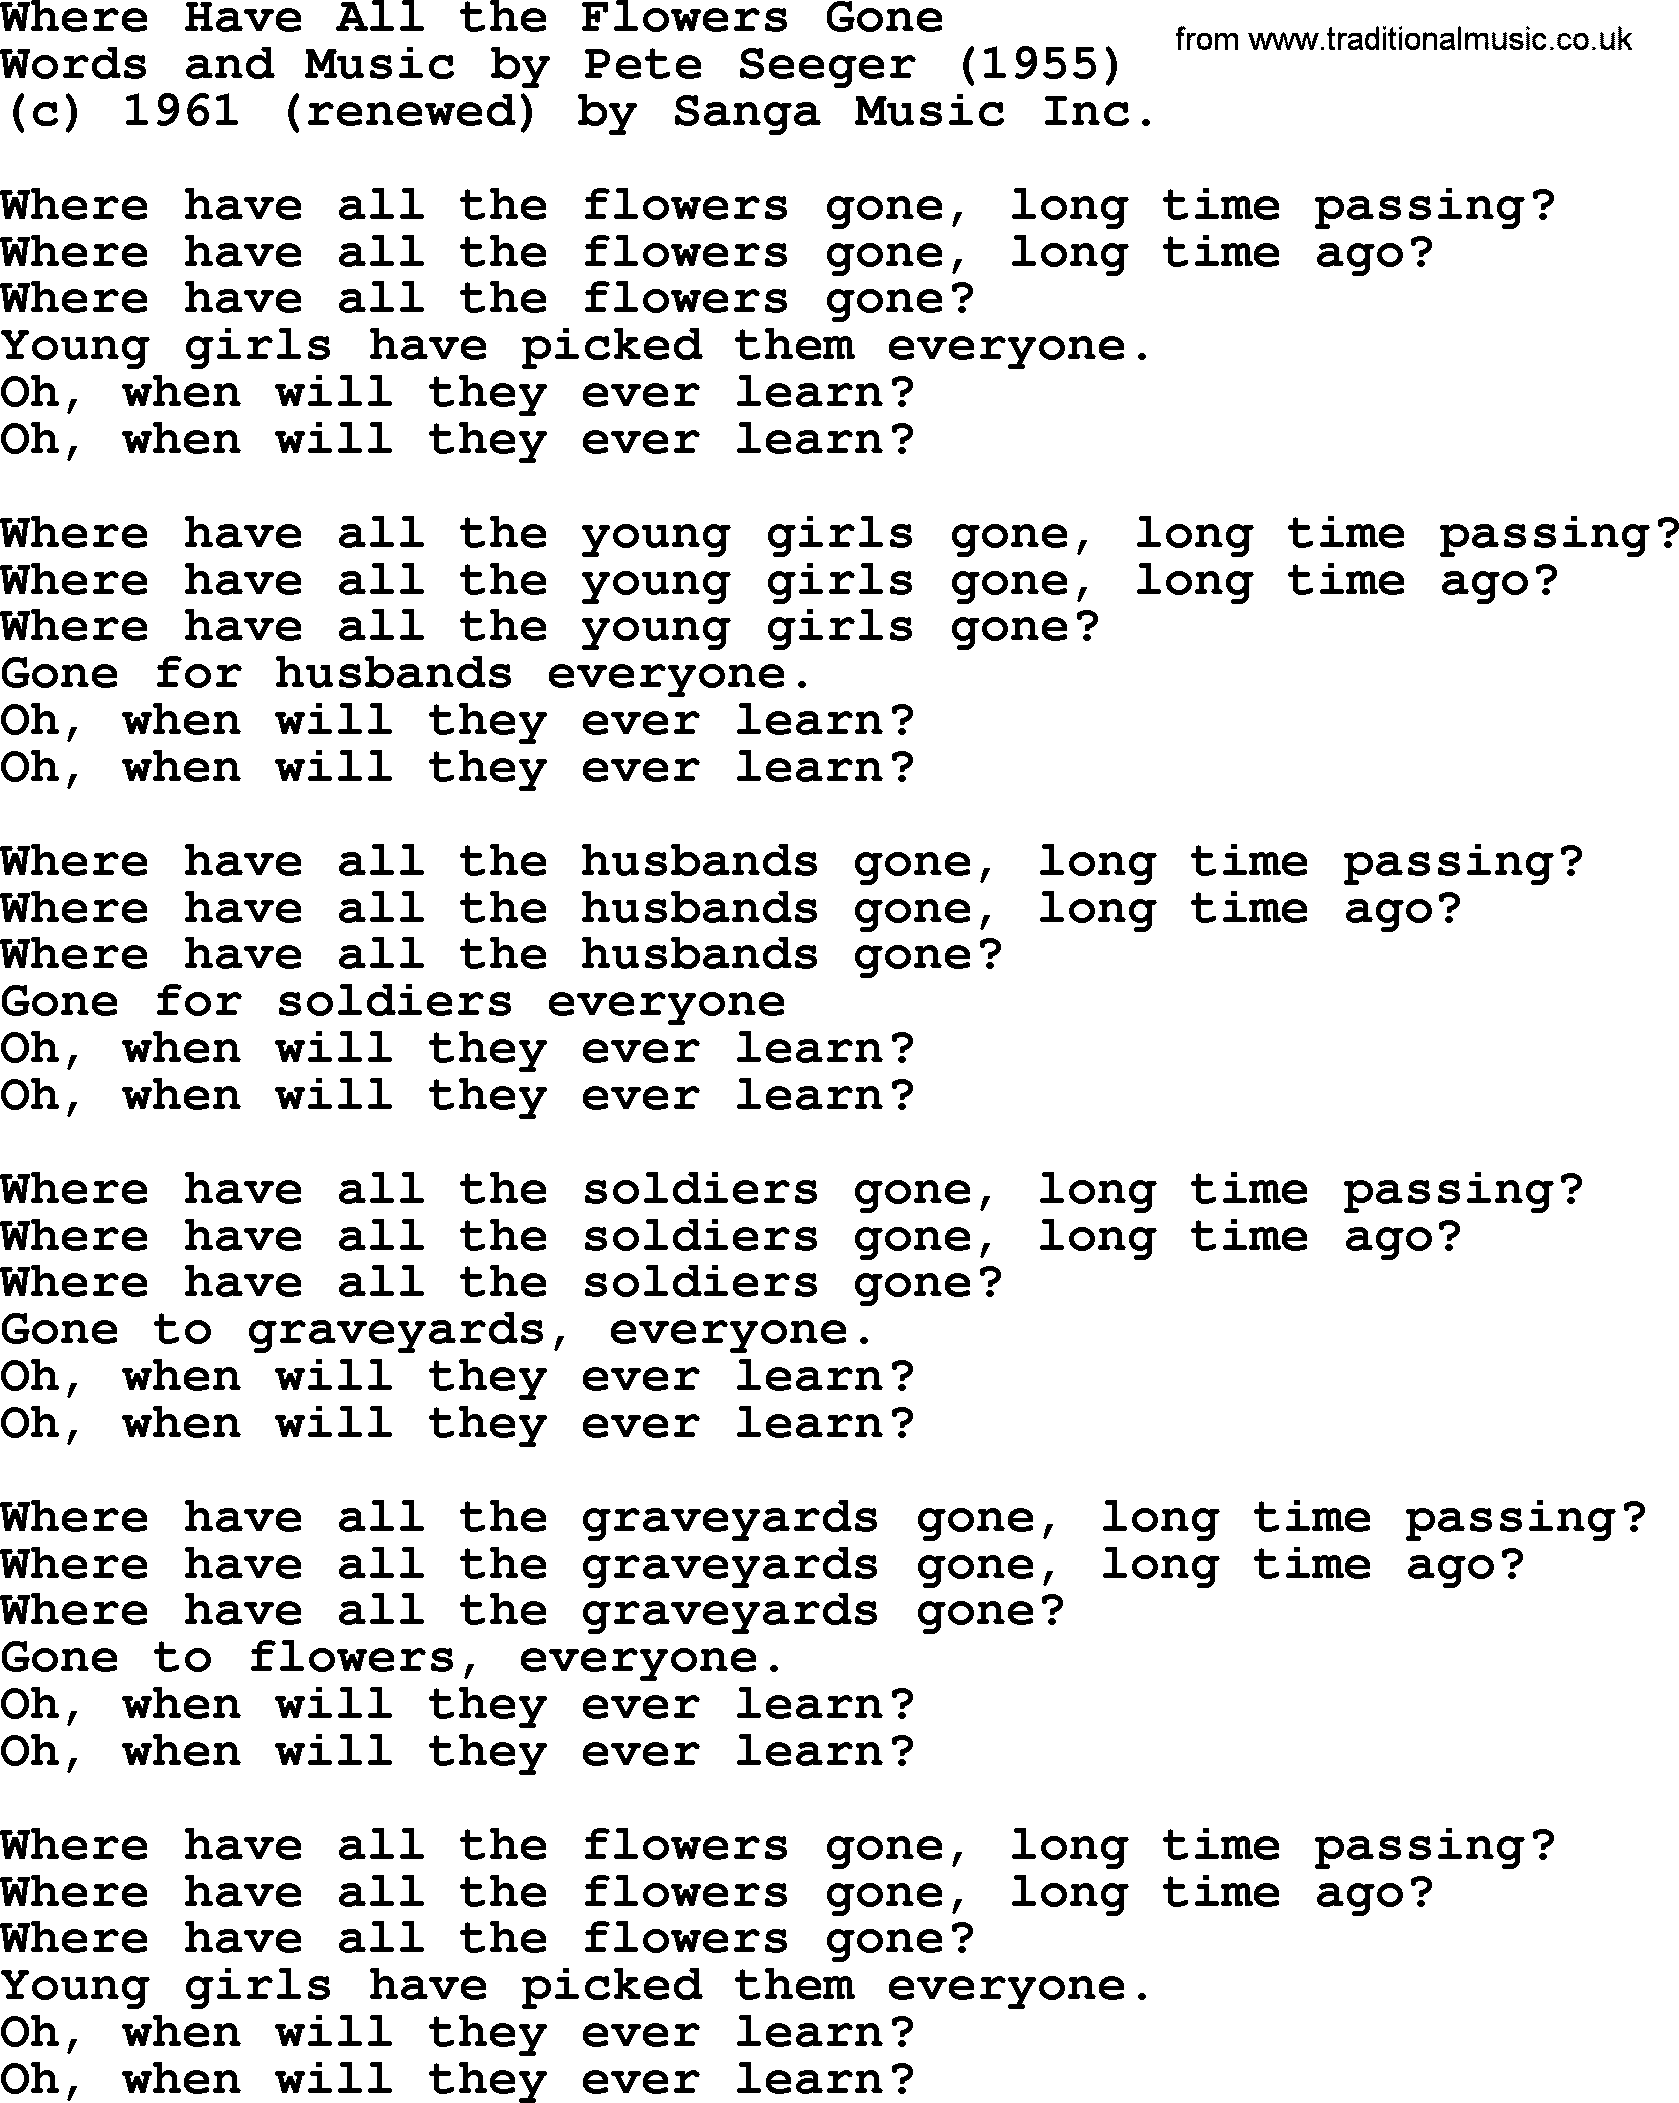 Pete Seeger Song Where Have All The Flowers Gone Lyrics